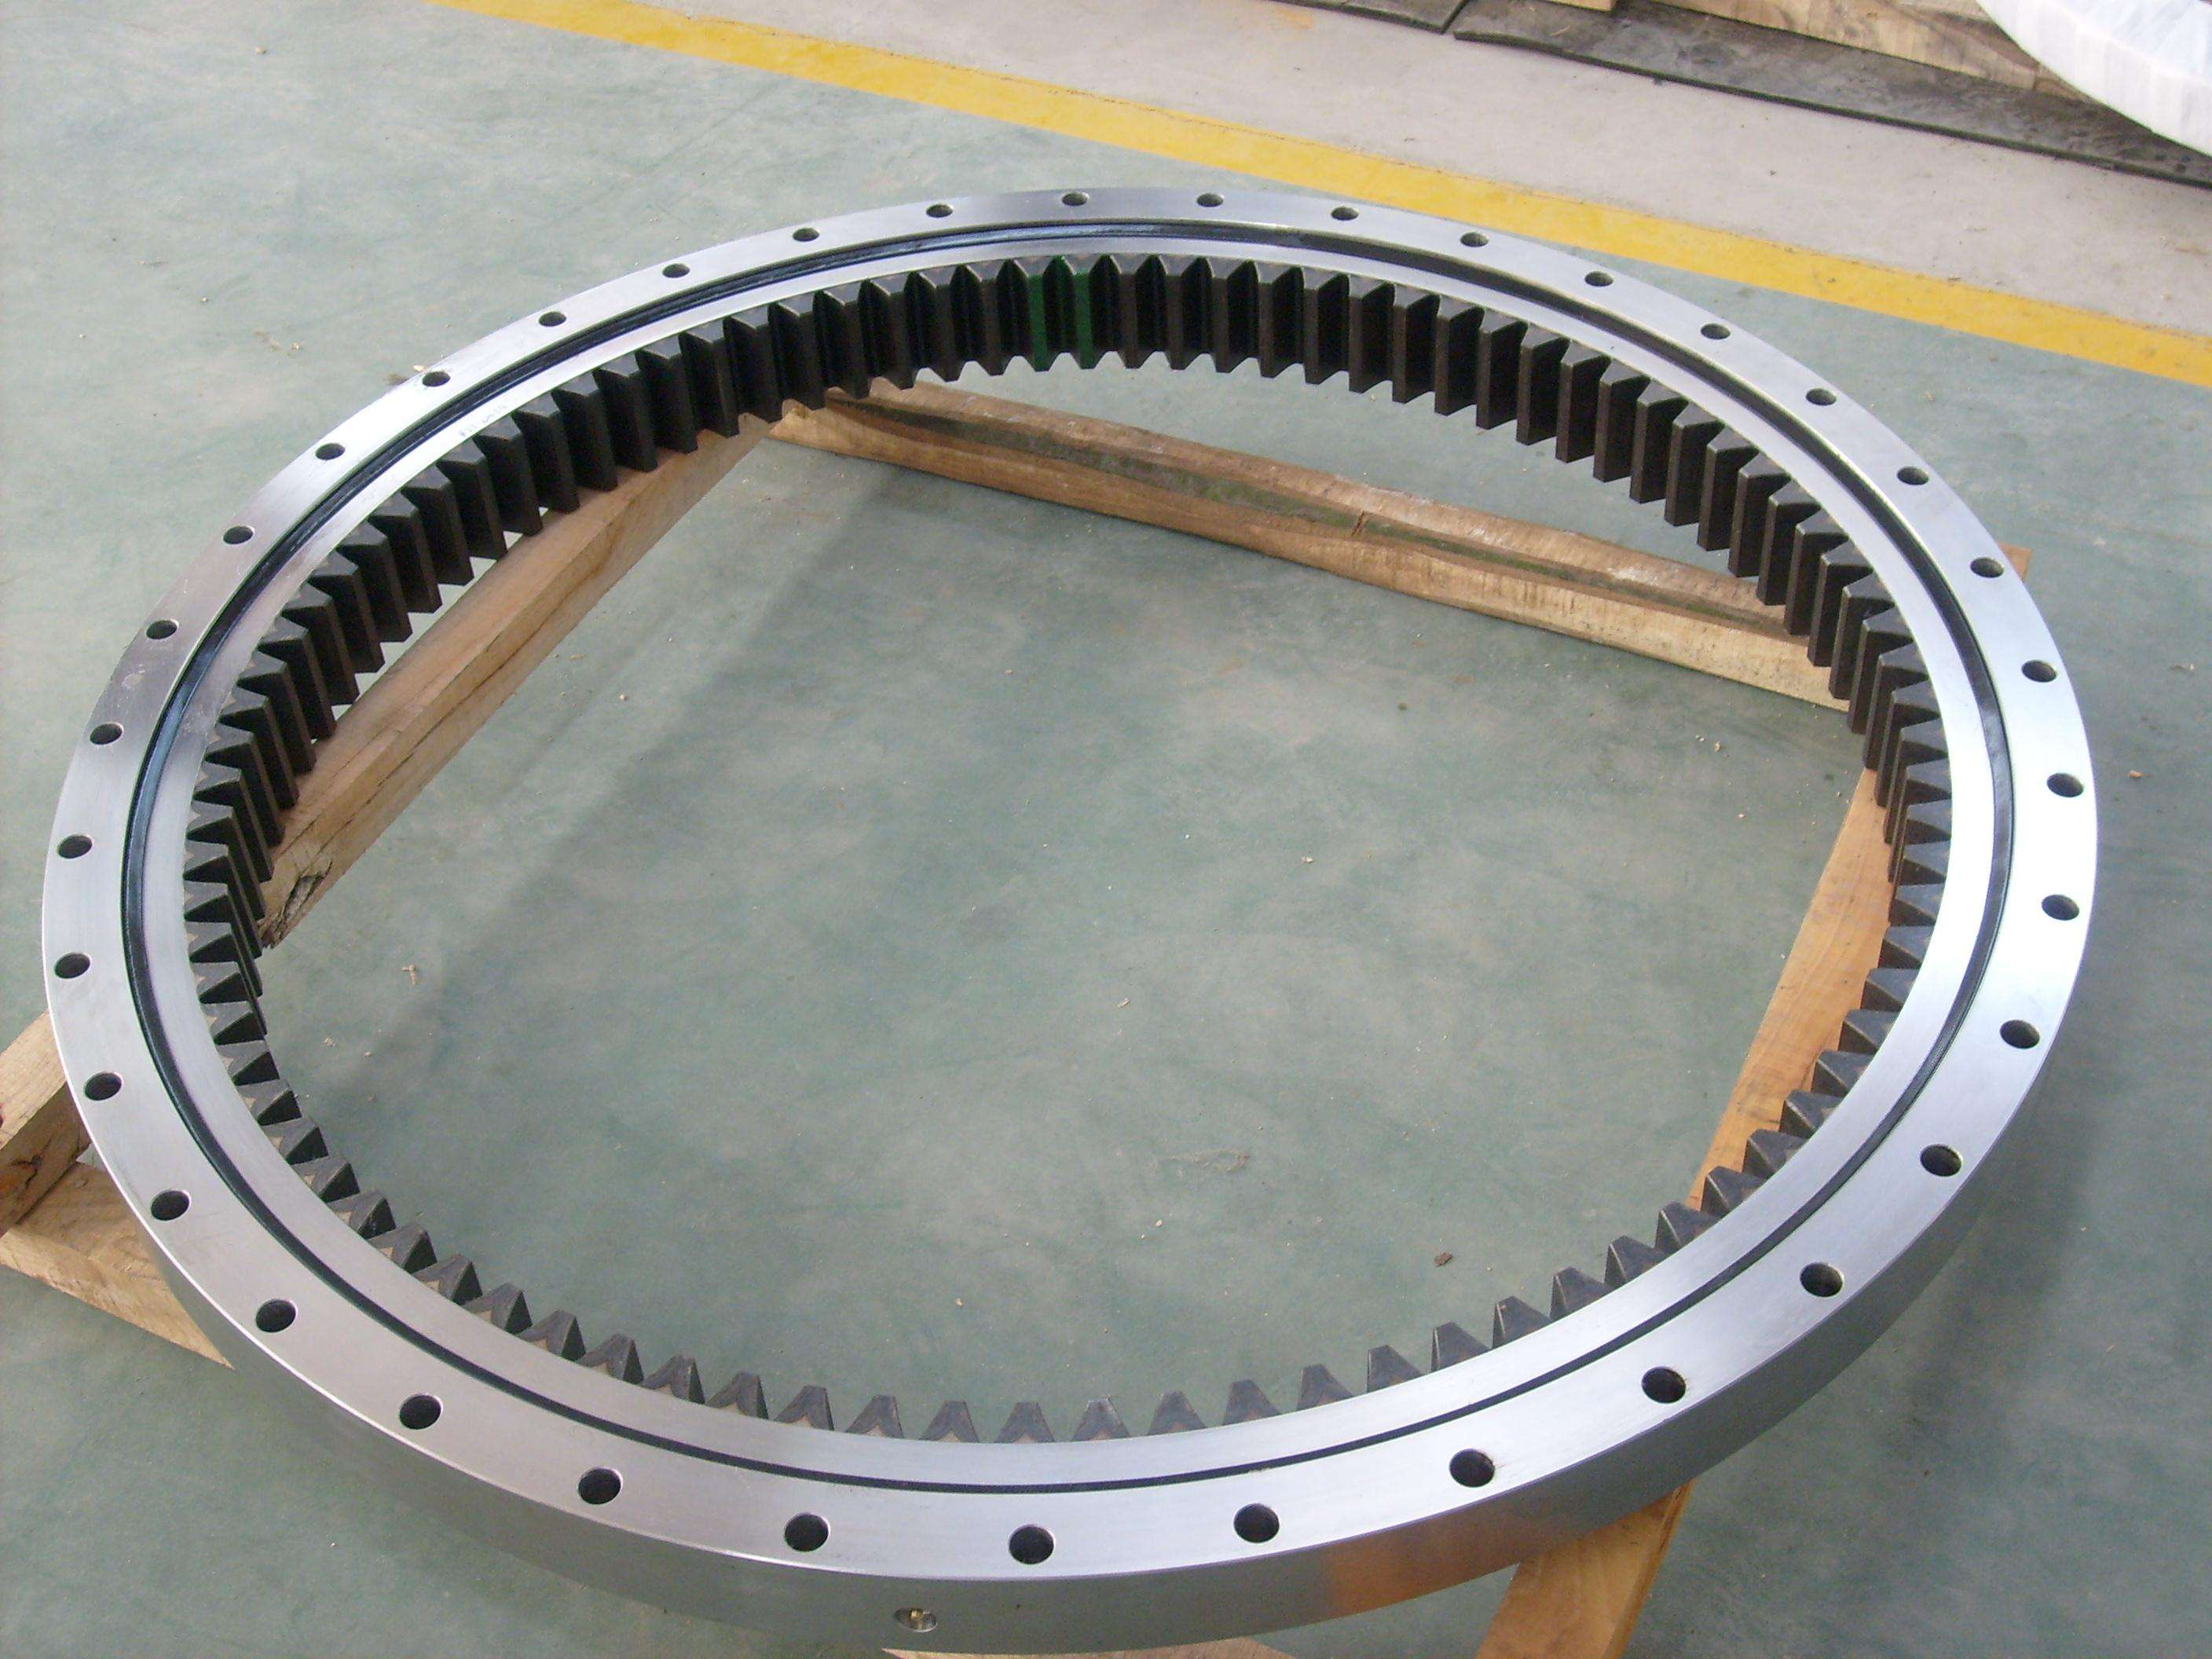 Four Point Contact Ball Slewing Turntable Bearing